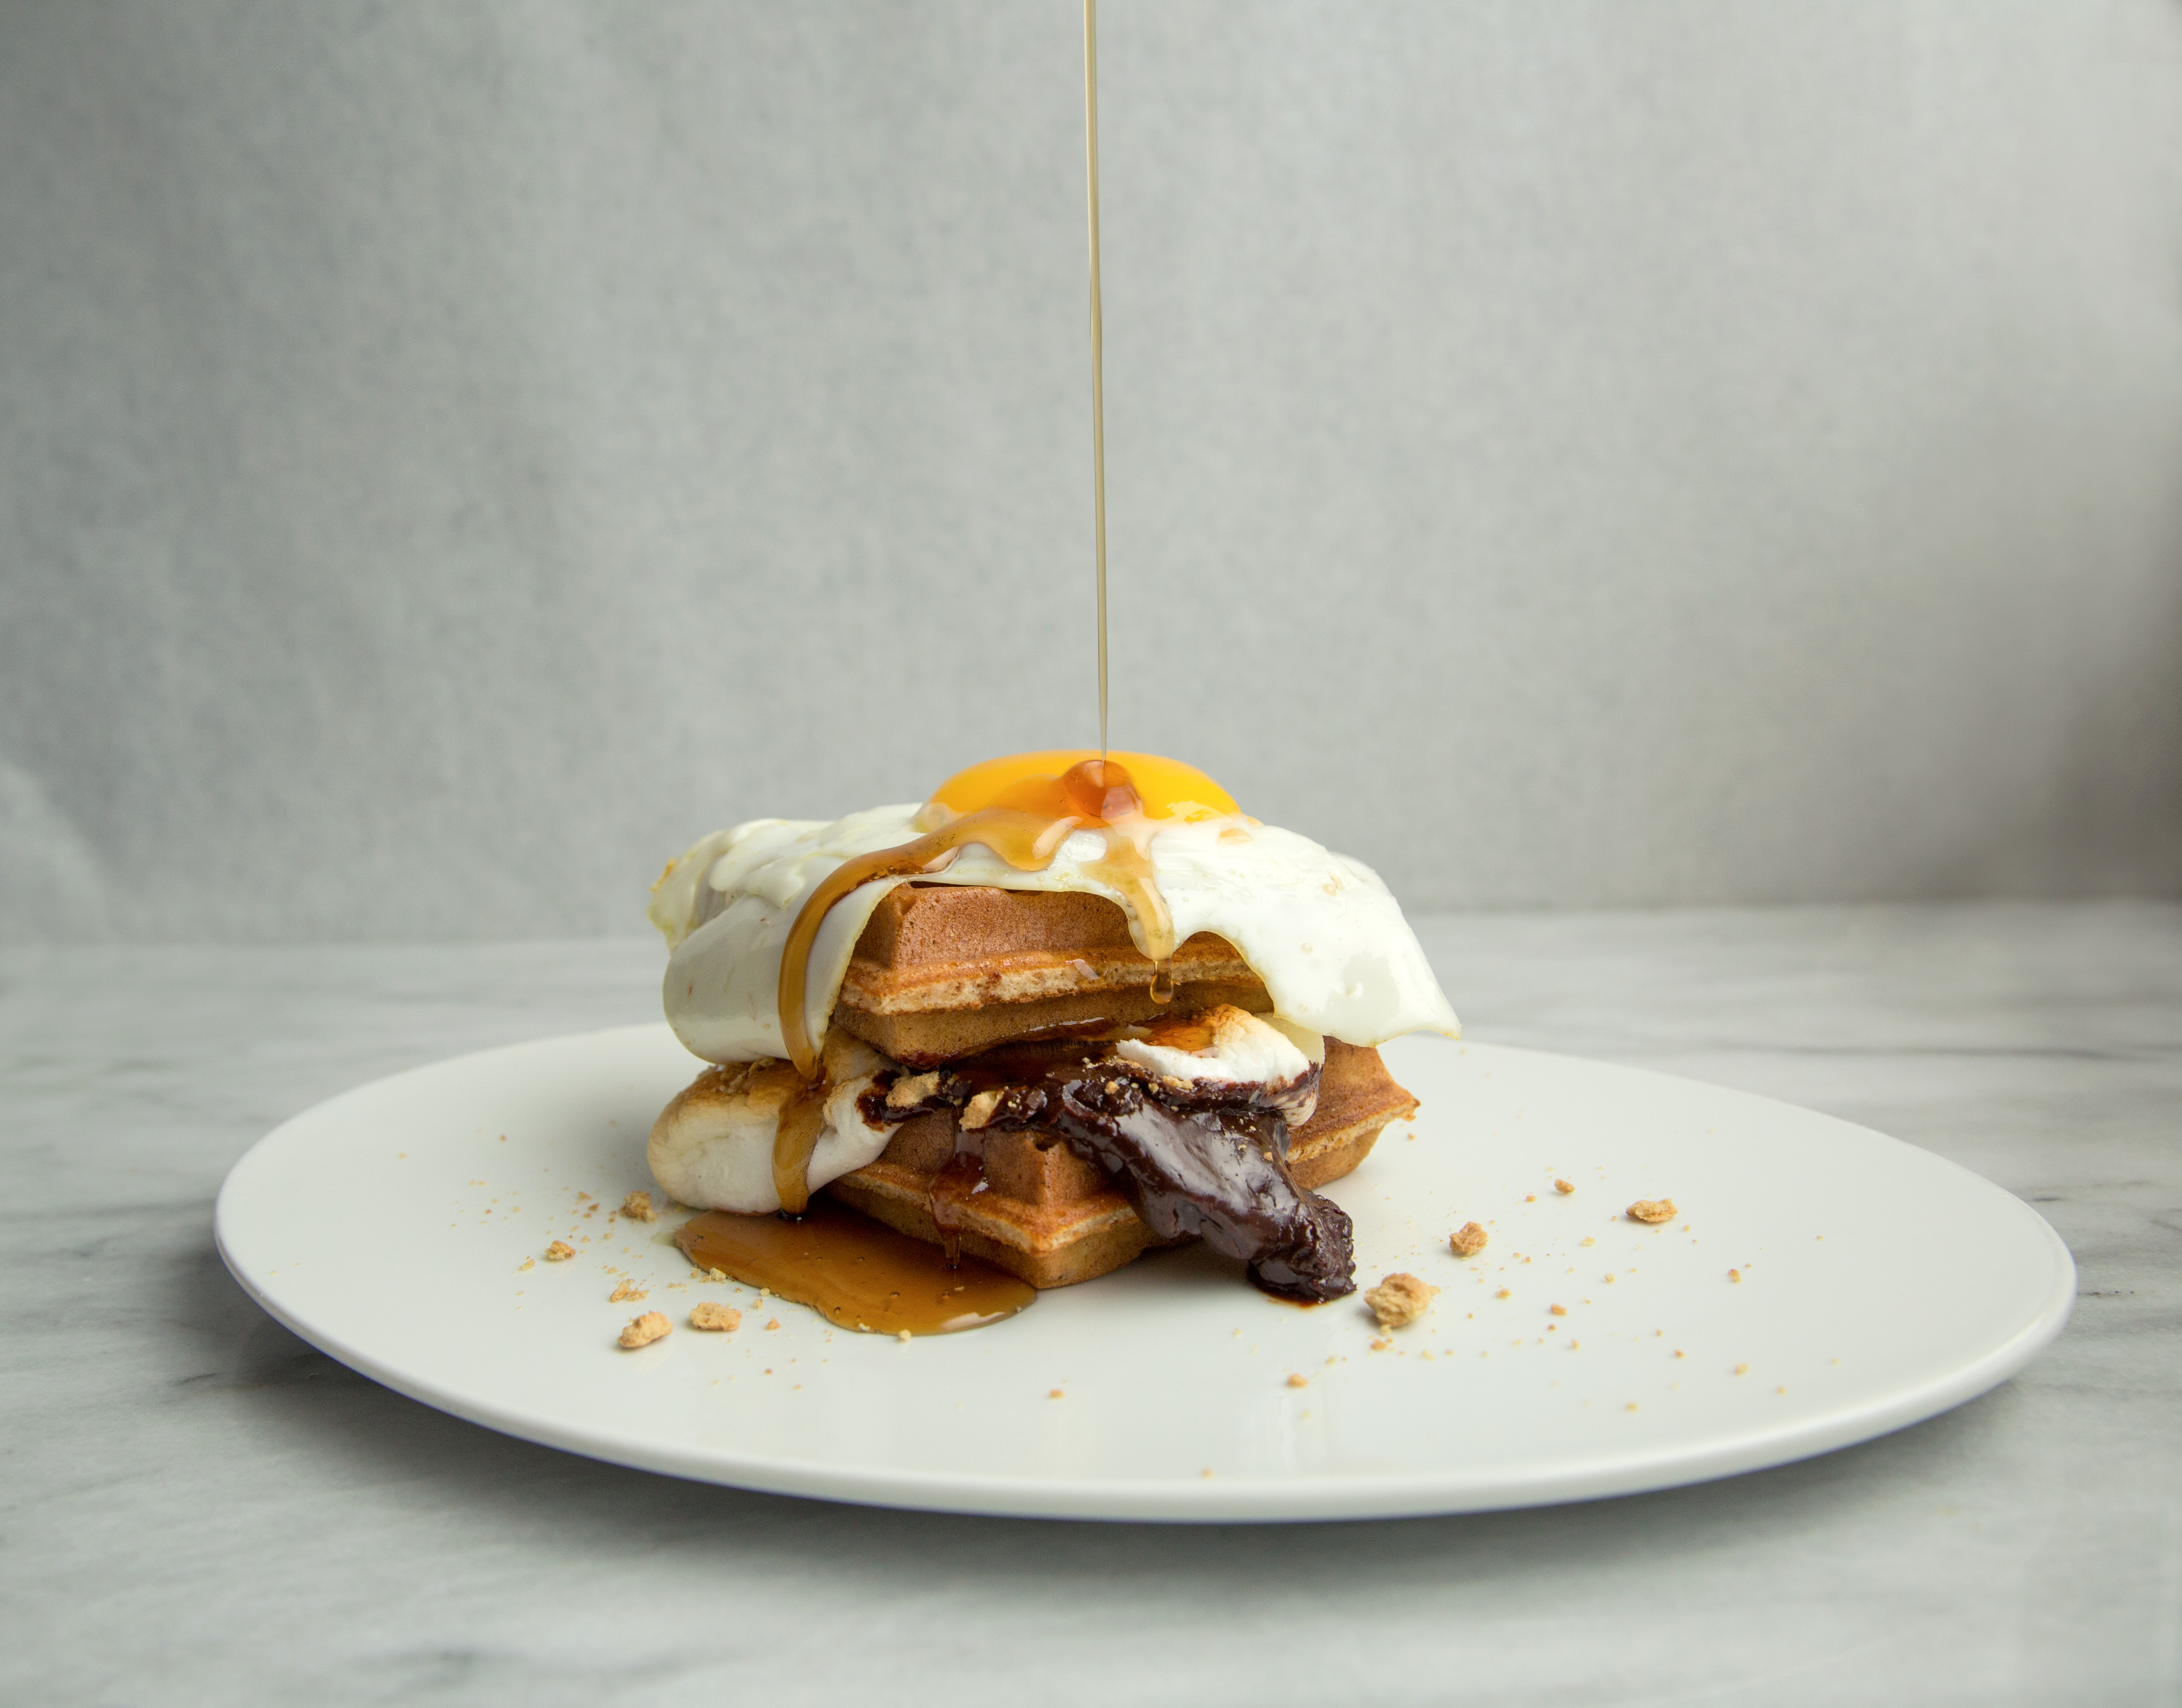 How to Make Breakfast S'mores